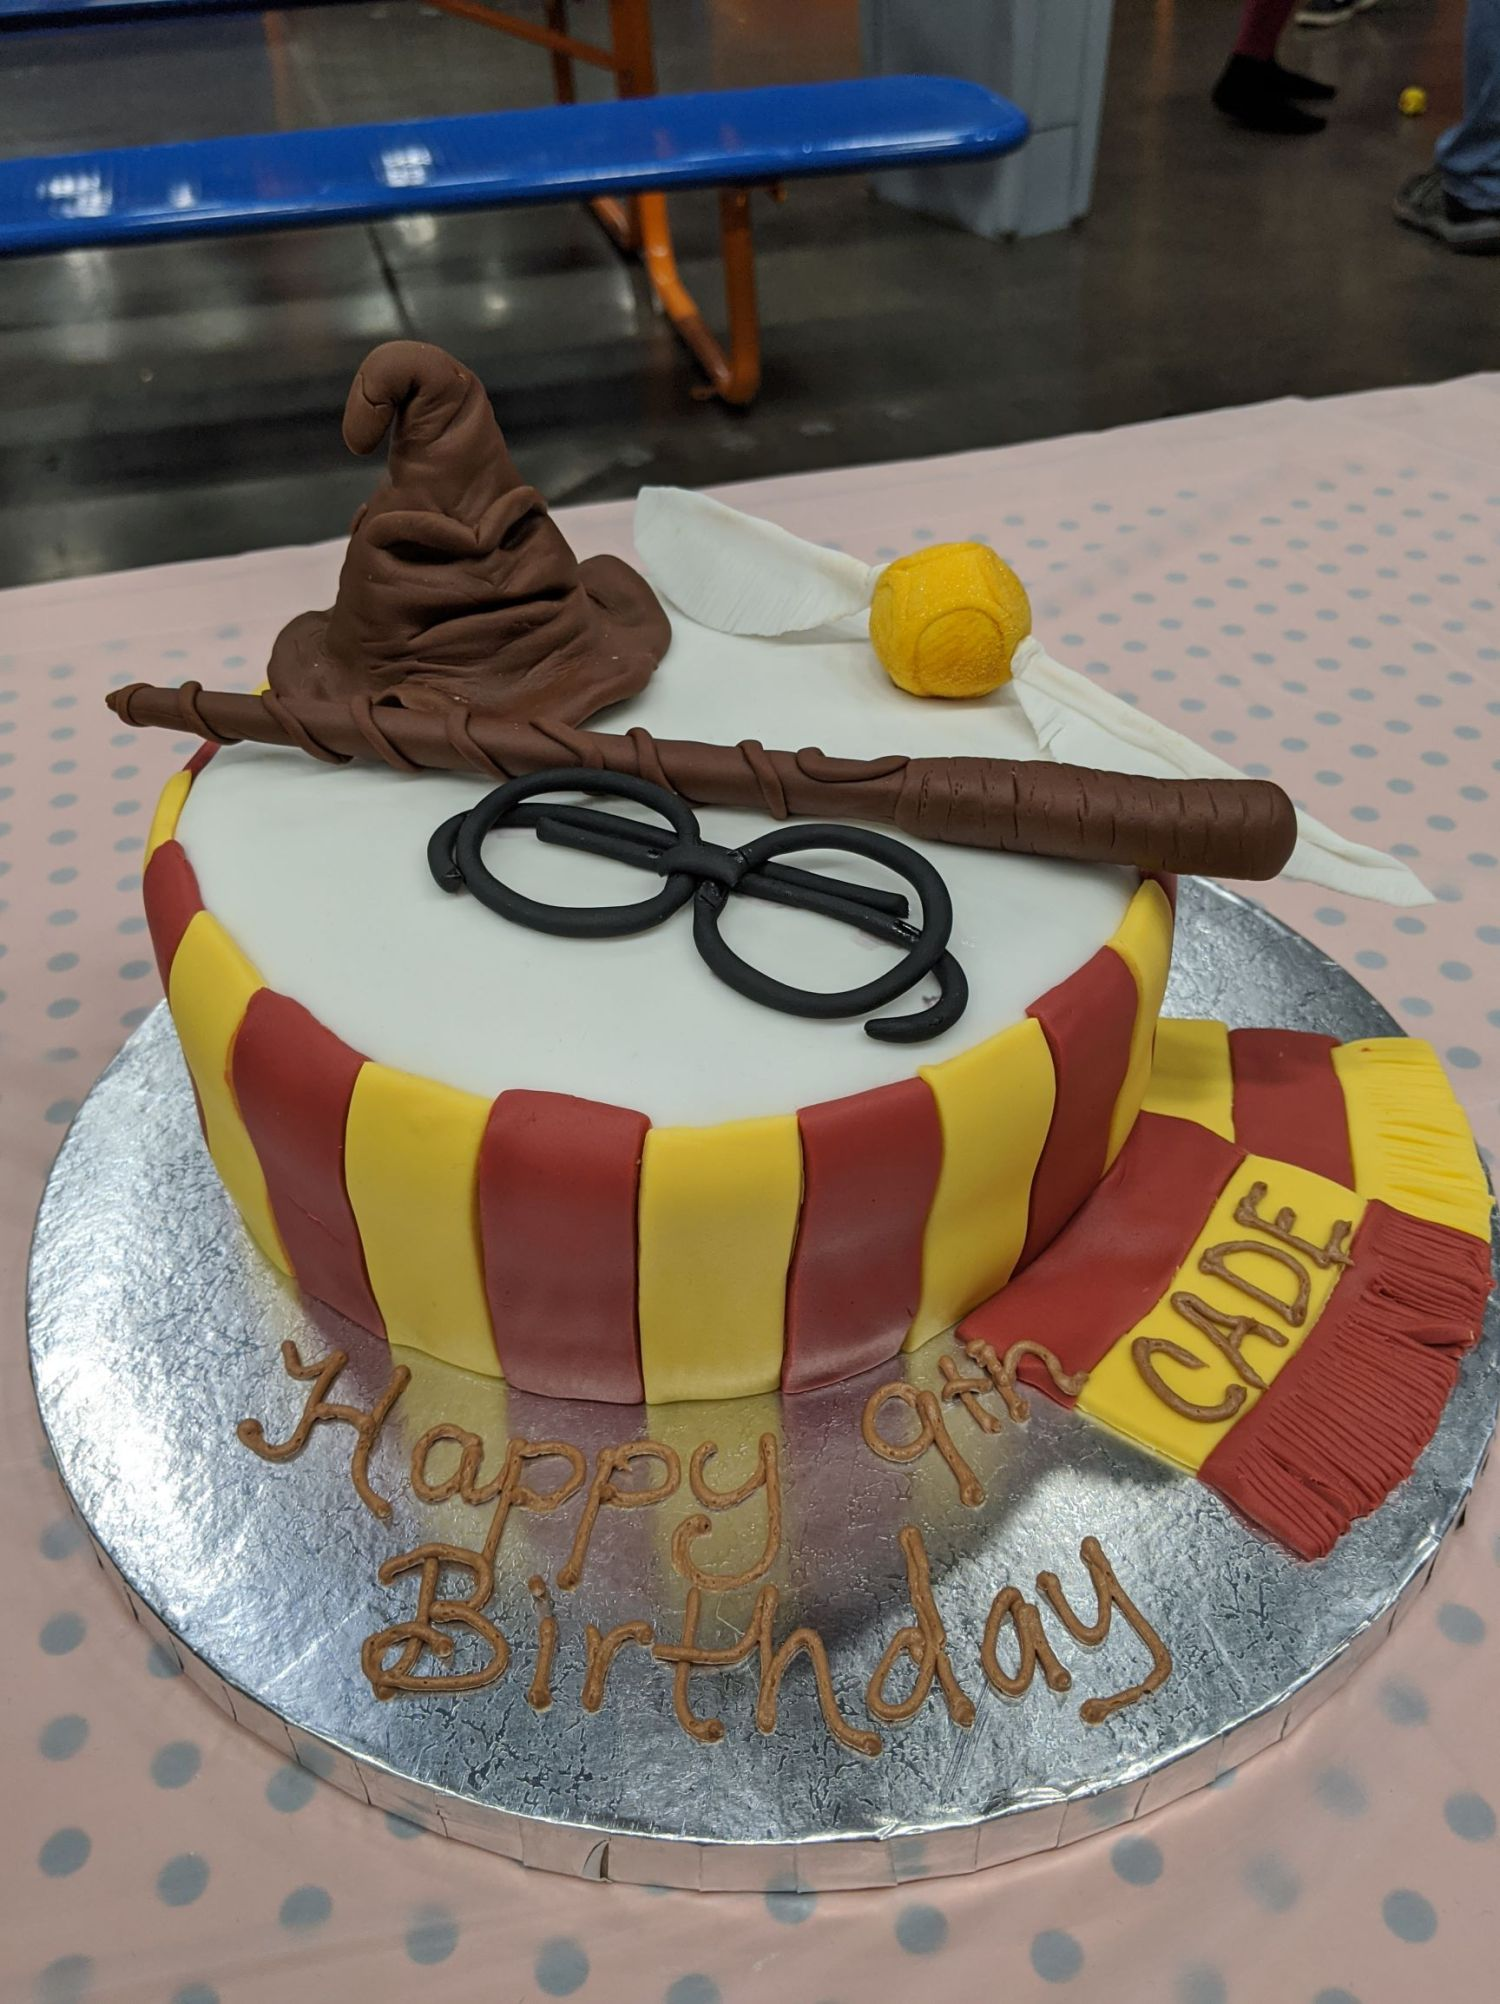 Stupendous Harry Potter Gryffindor Birthday Cake A Little Of This And A Funny Birthday Cards Online Alyptdamsfinfo